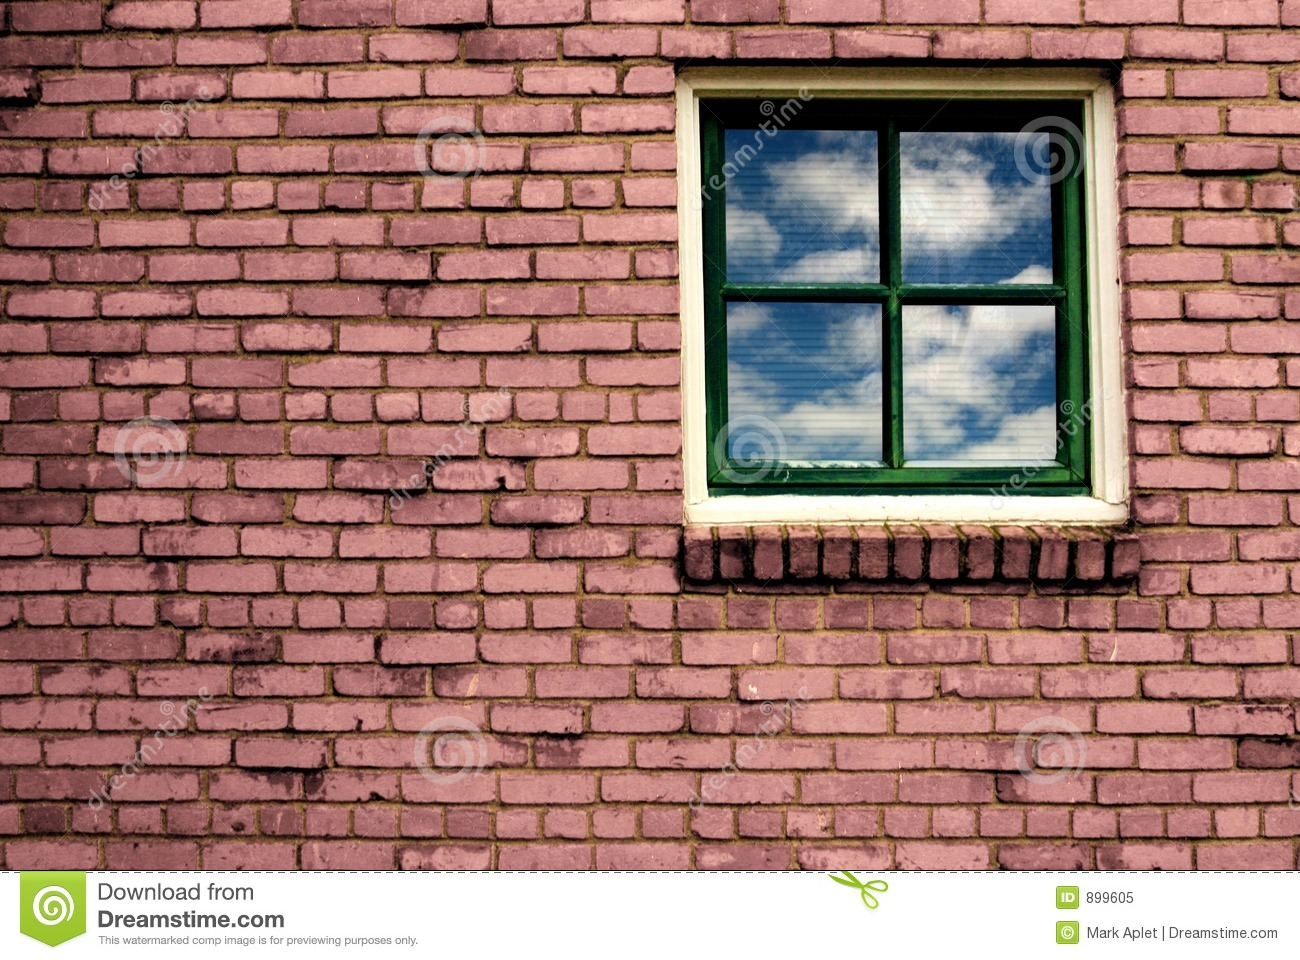 Window of opportunity royalty free stock photo image 899605 for Window of opportunity